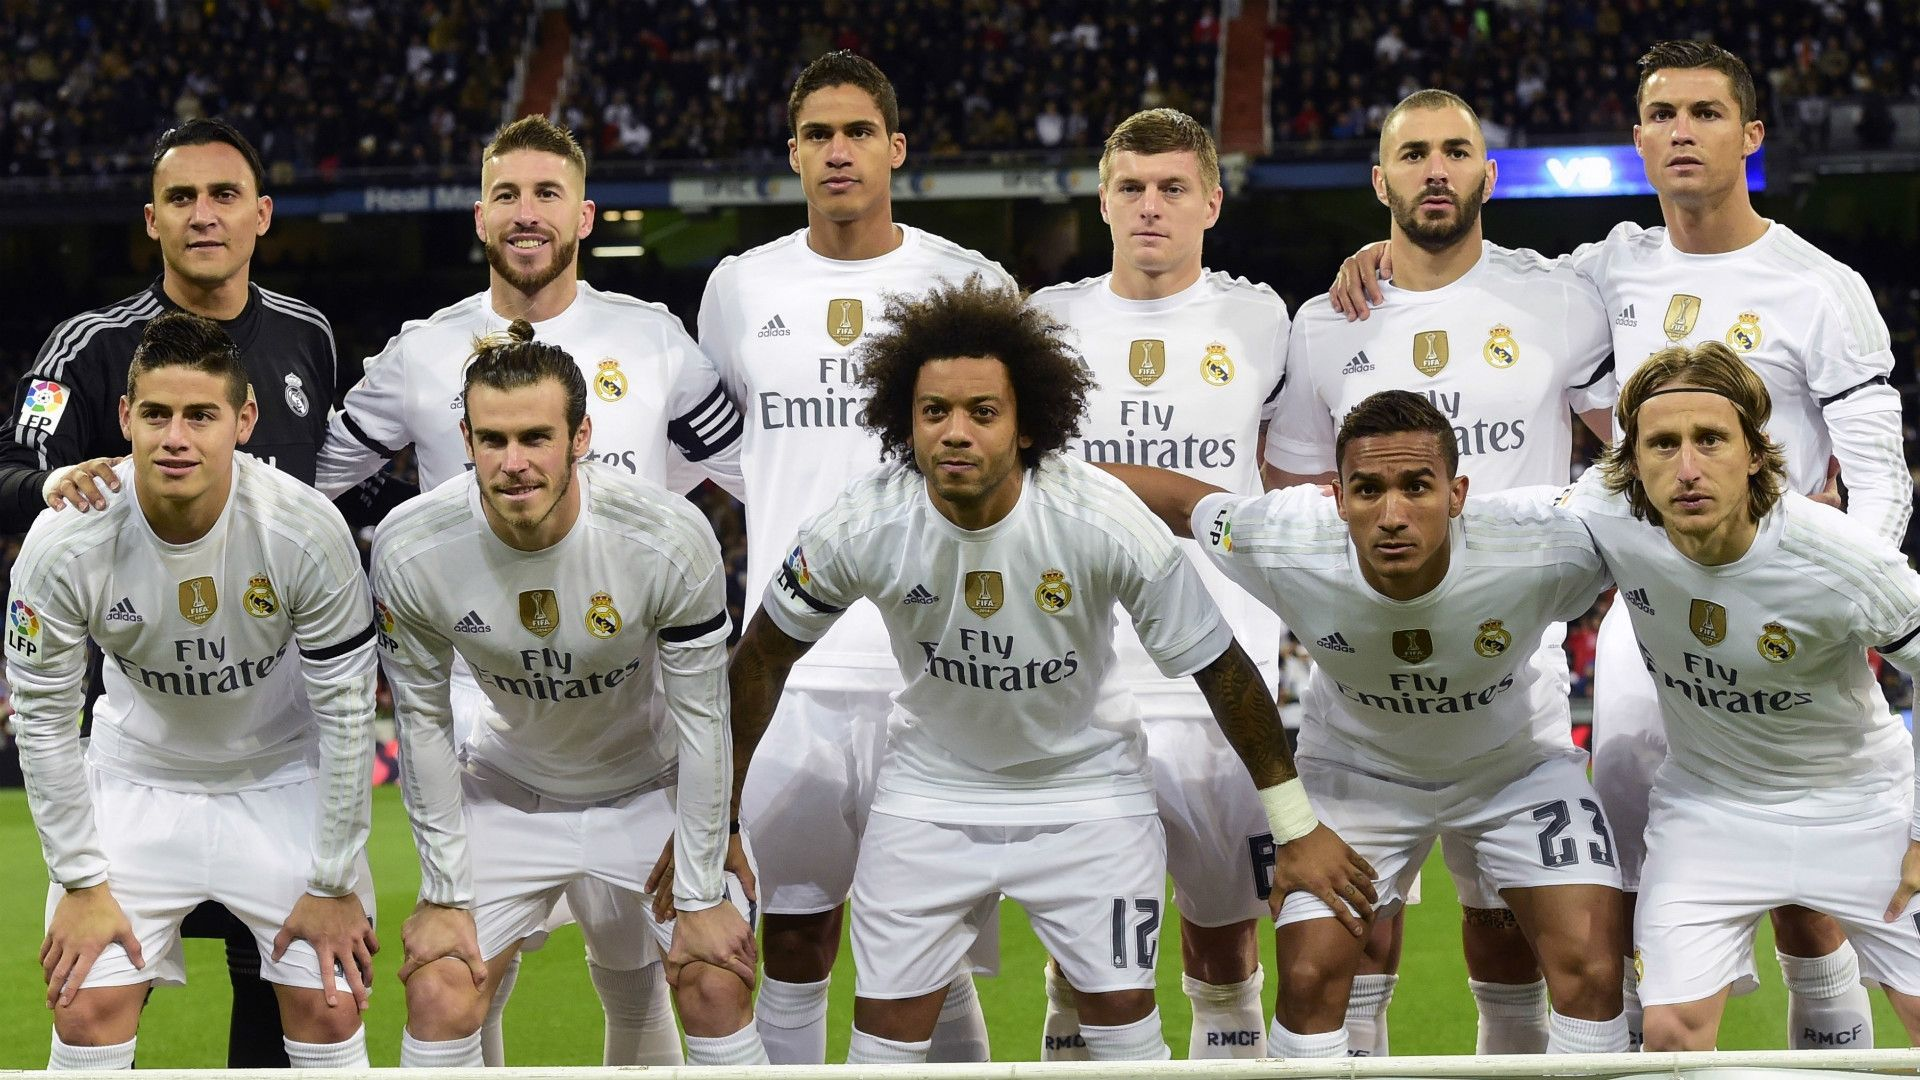 Real Madrid Wallpaper Equipo 2018 Hd Football In 2020 Real Madrid Ronaldo Ronaldo Wallpapers